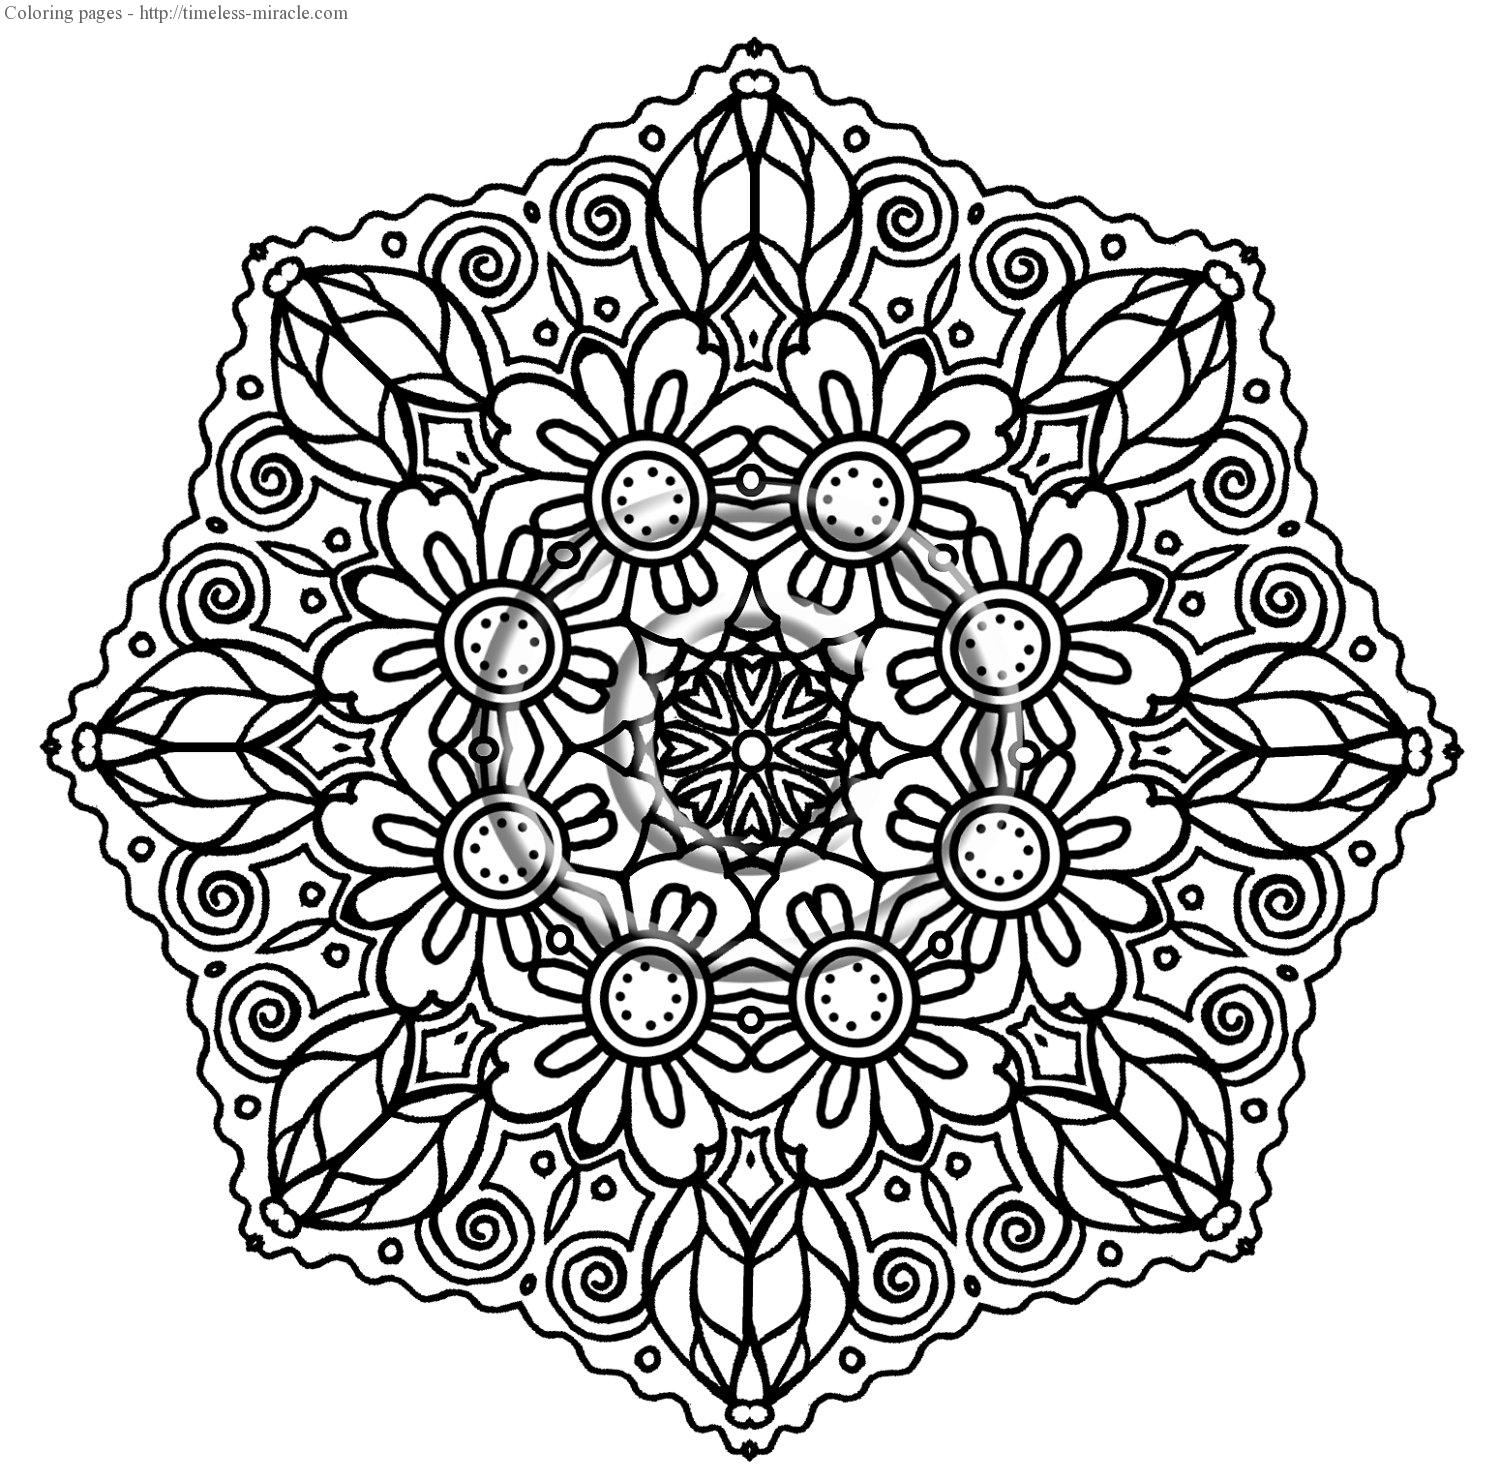 coloring sheets designs doodle coloring page intricate designs 1 coloring designs sheets